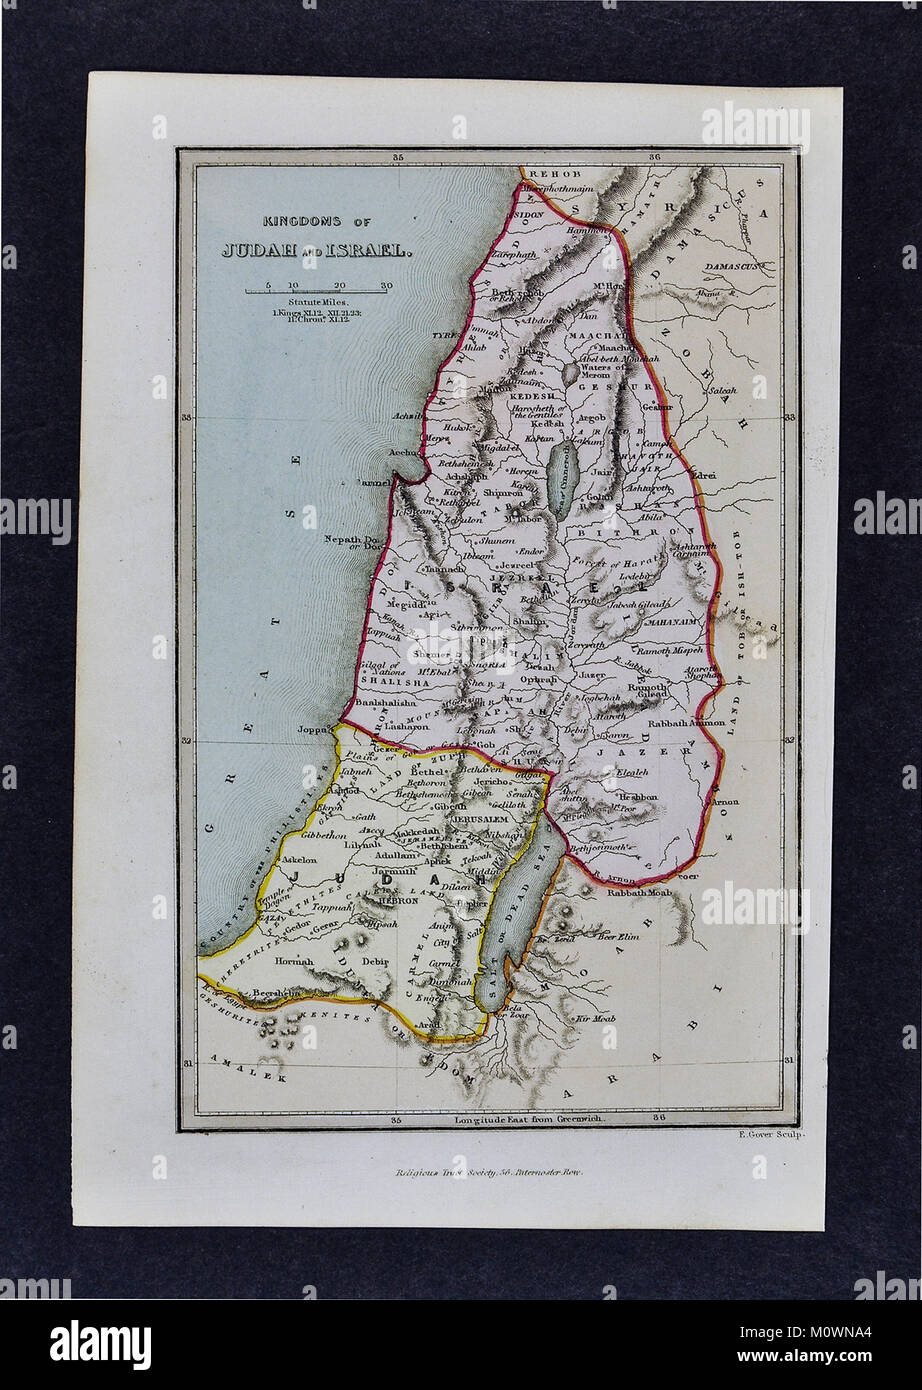 1799 Bible Tract Society Map - Old Testament Kingdoms of Judah and Israel - Stock Image